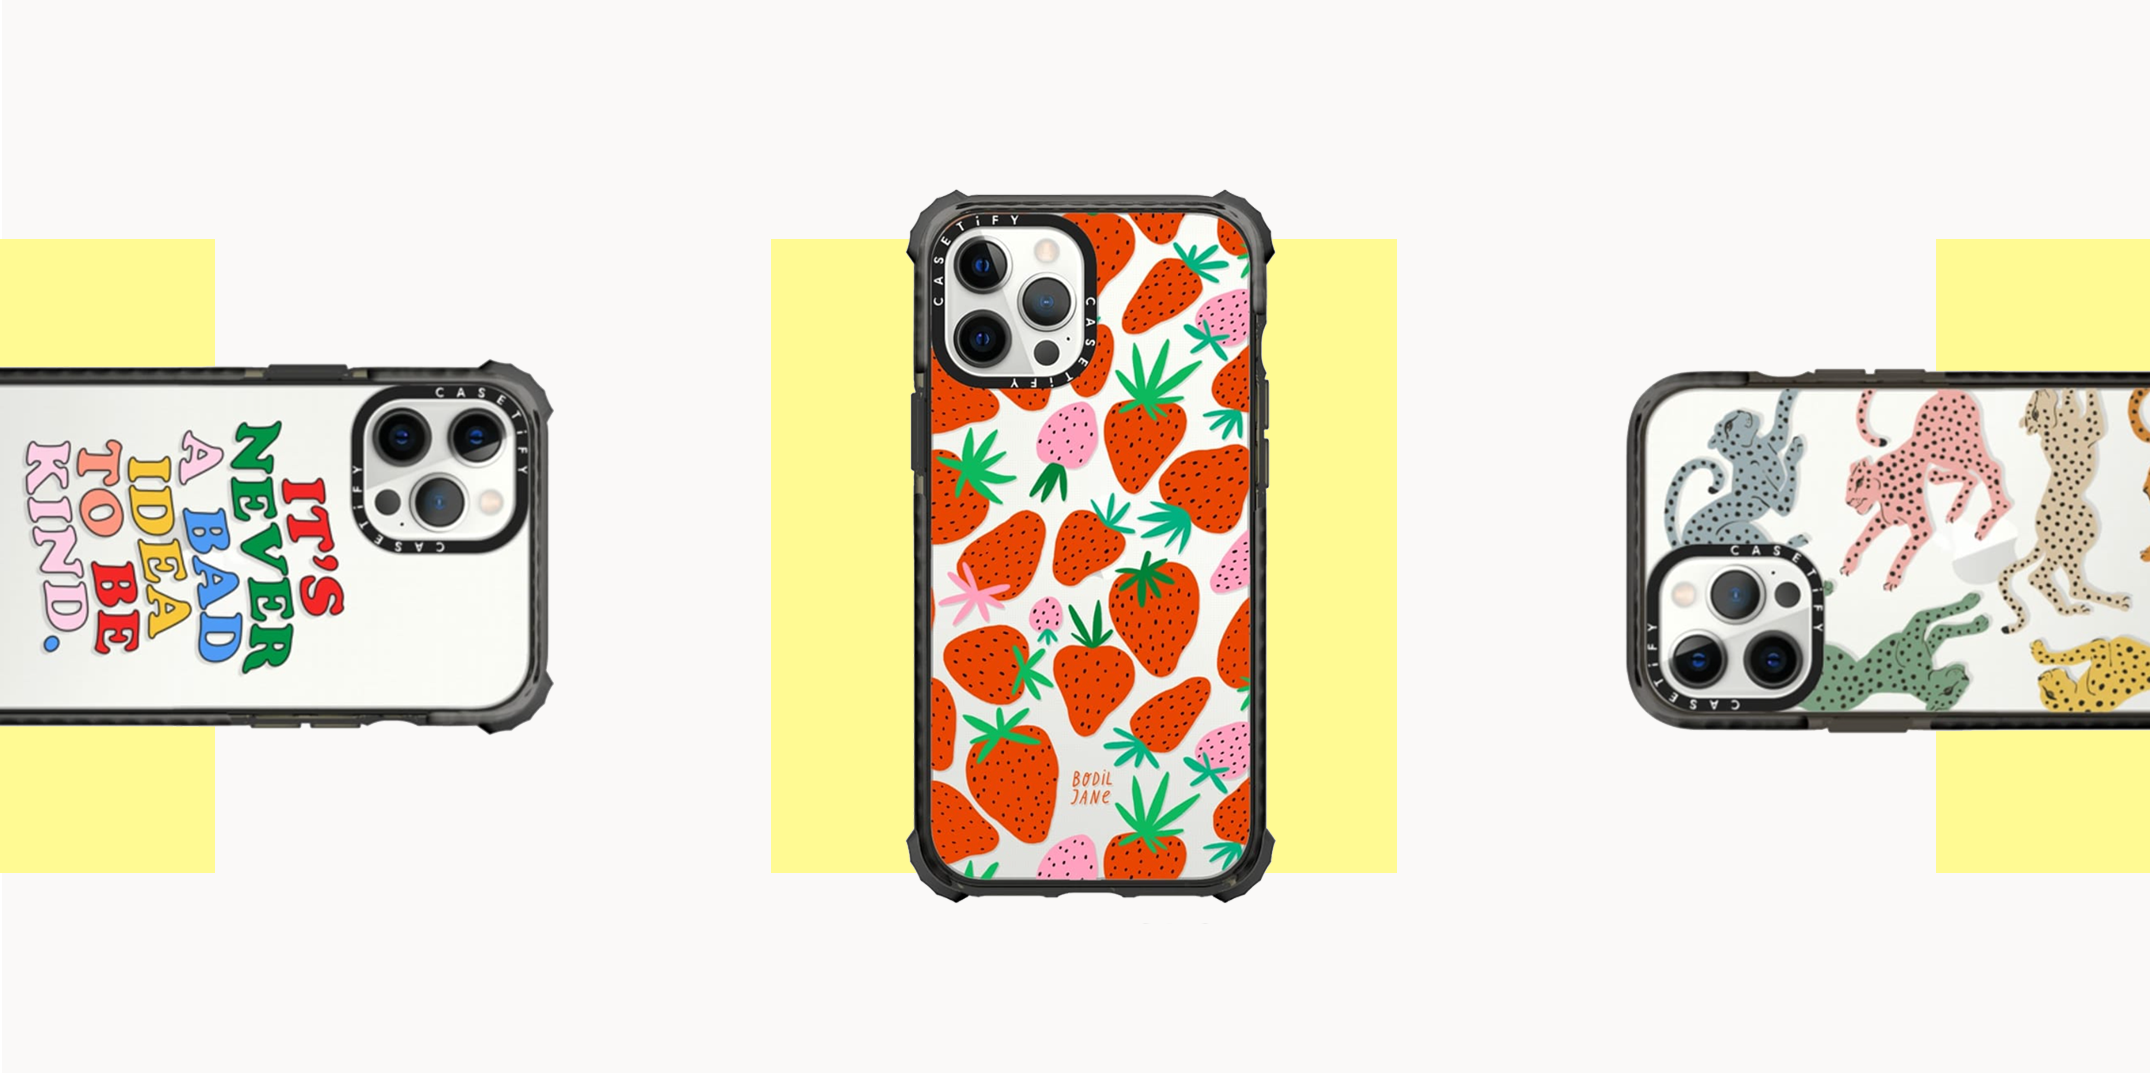 Tech and Phone Cases Sales — Hauliday 2021